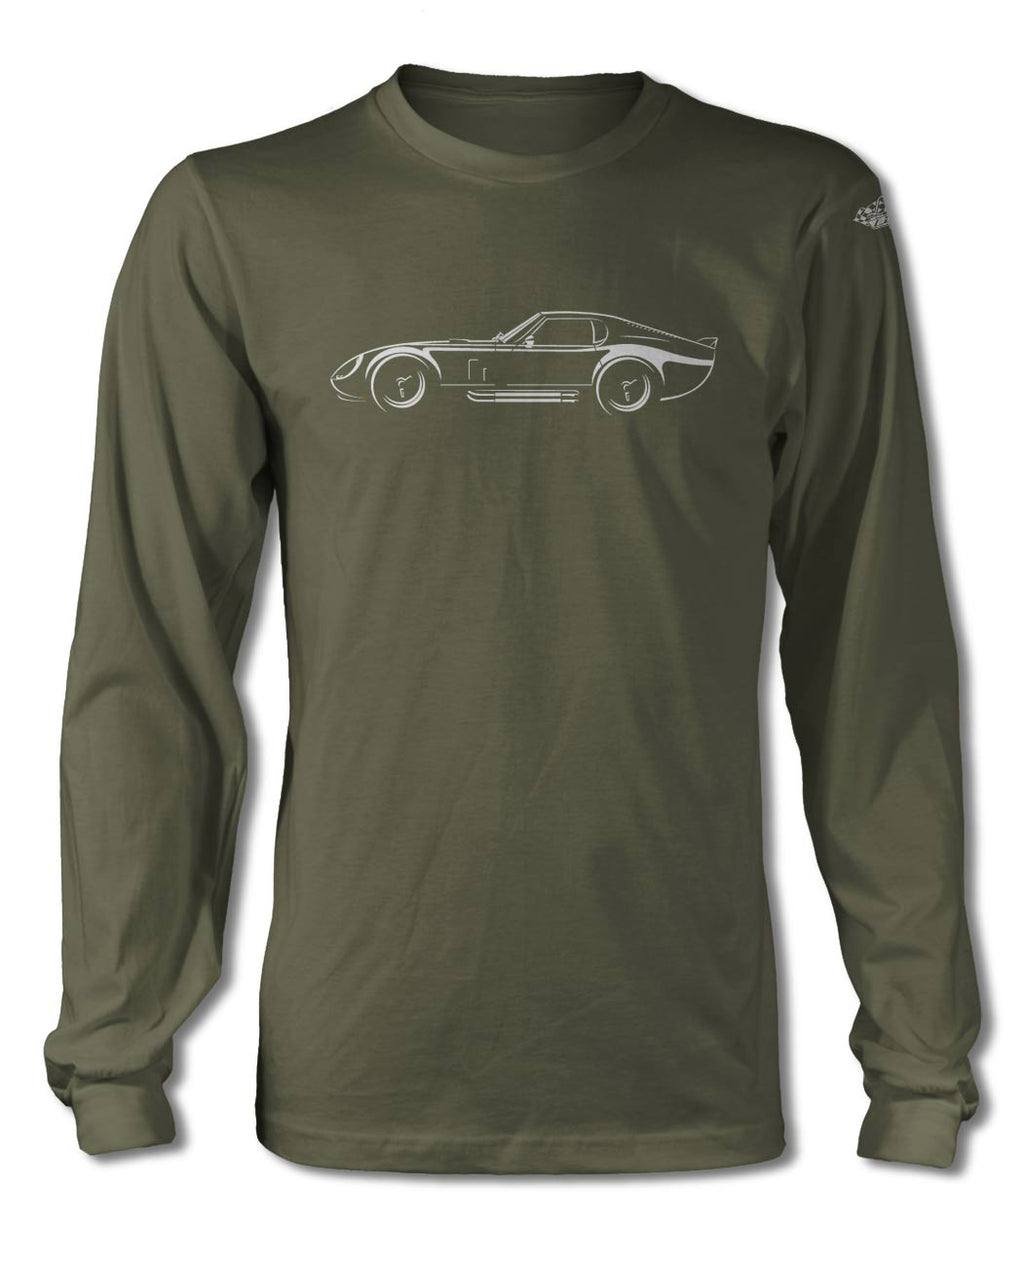 1964 Daytona Coupe Art of Light T-Shirt - Long Sleeves